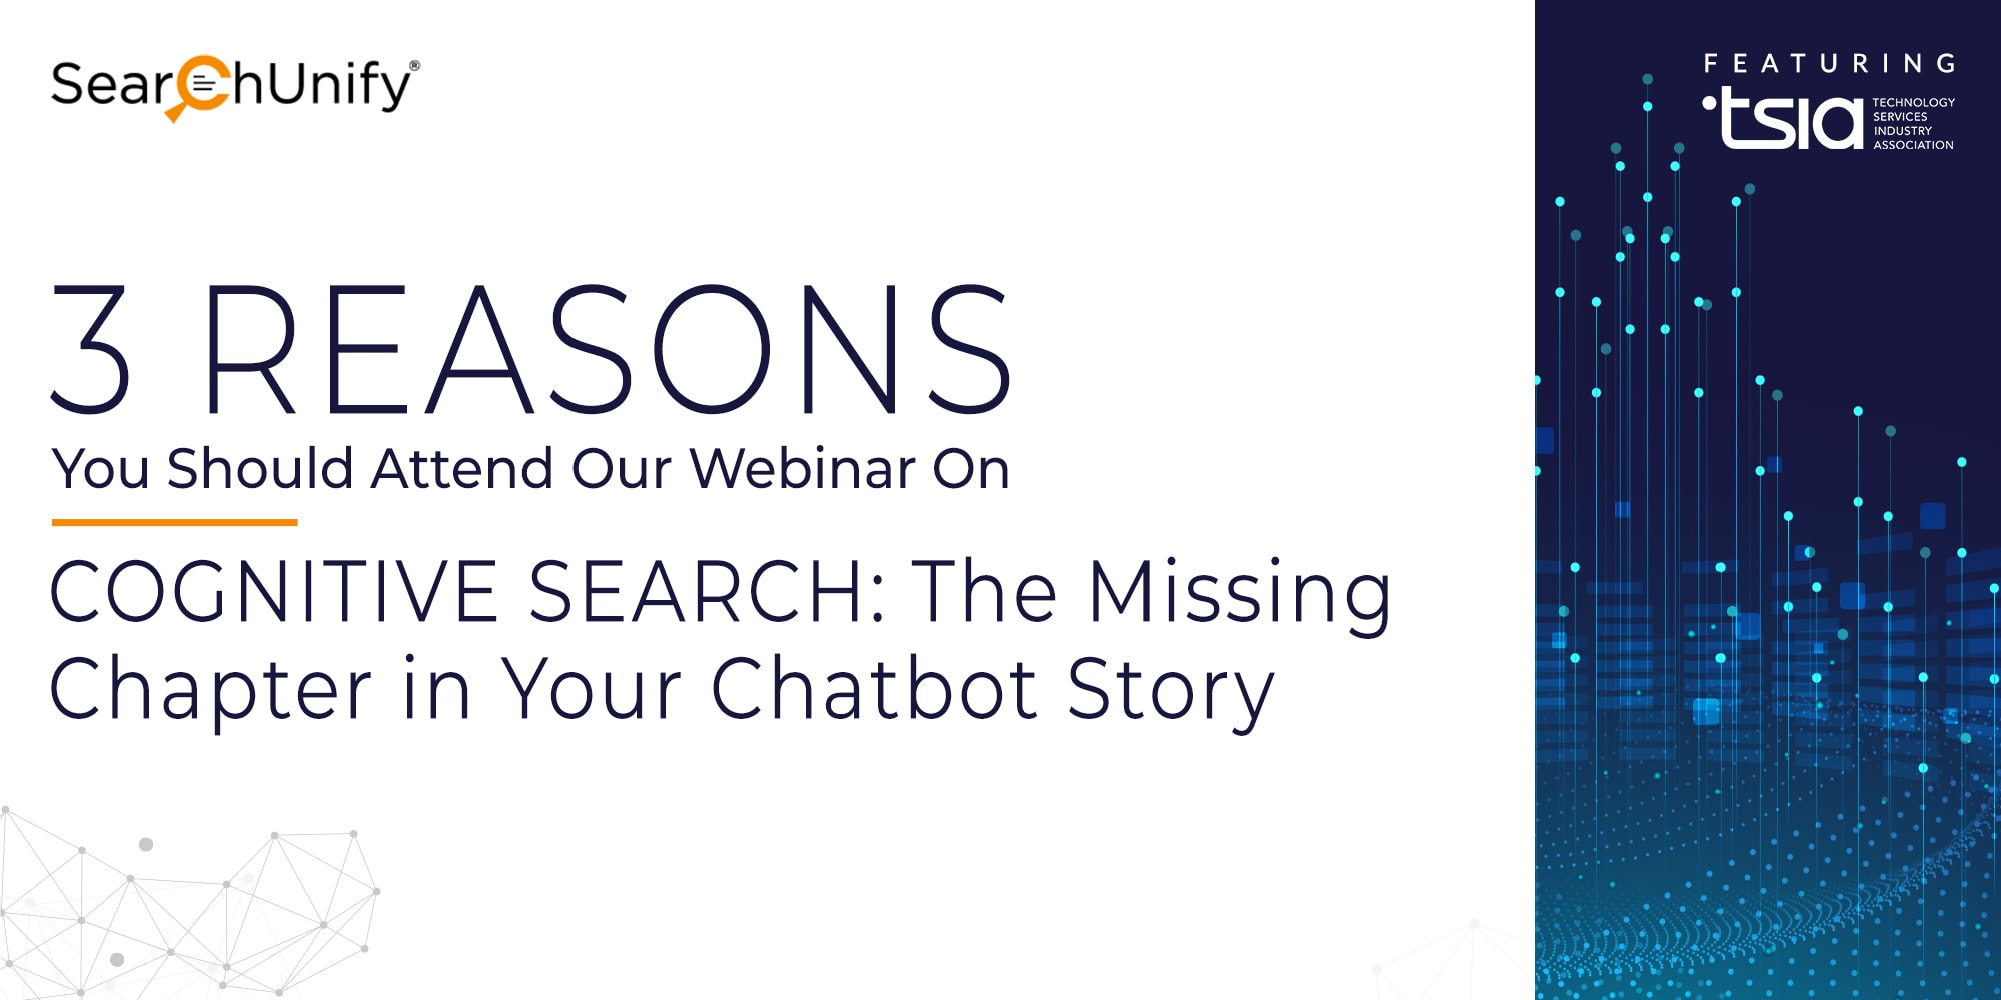 3 Reasons You Want to Attend Our Webinar On Cognitive Search: The Missing Chapter In Your Chatbot Story